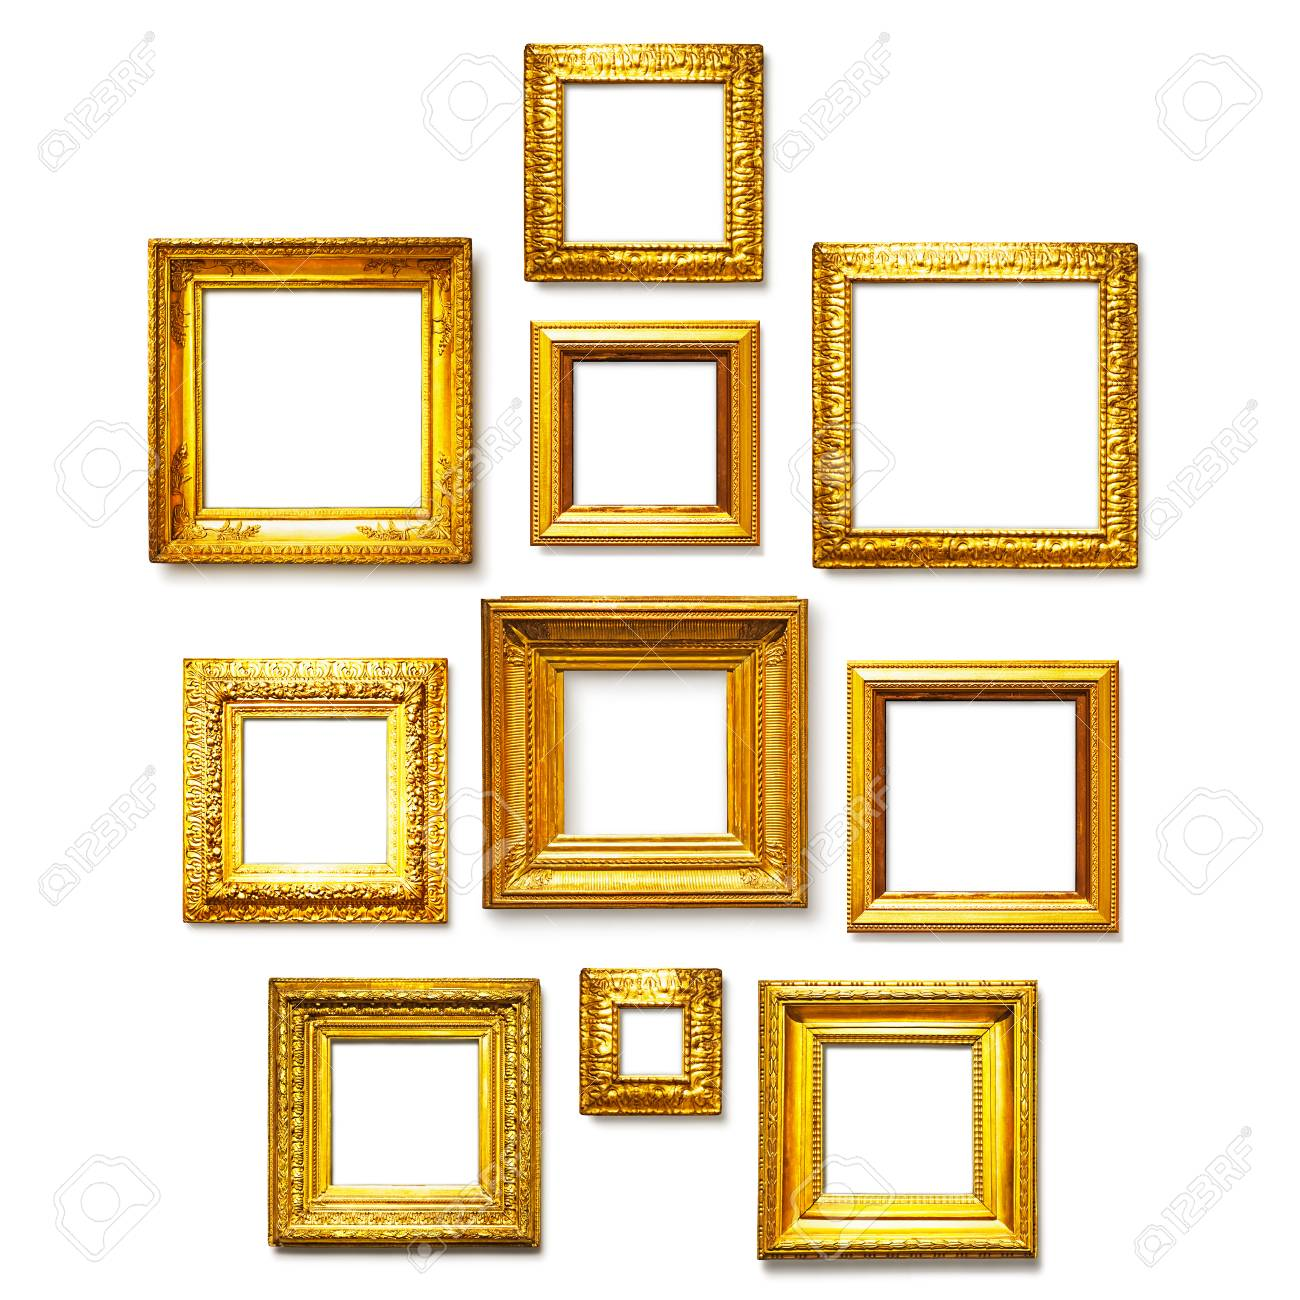 Antique Square Gold Frames Collection On White Background. Gallery ...